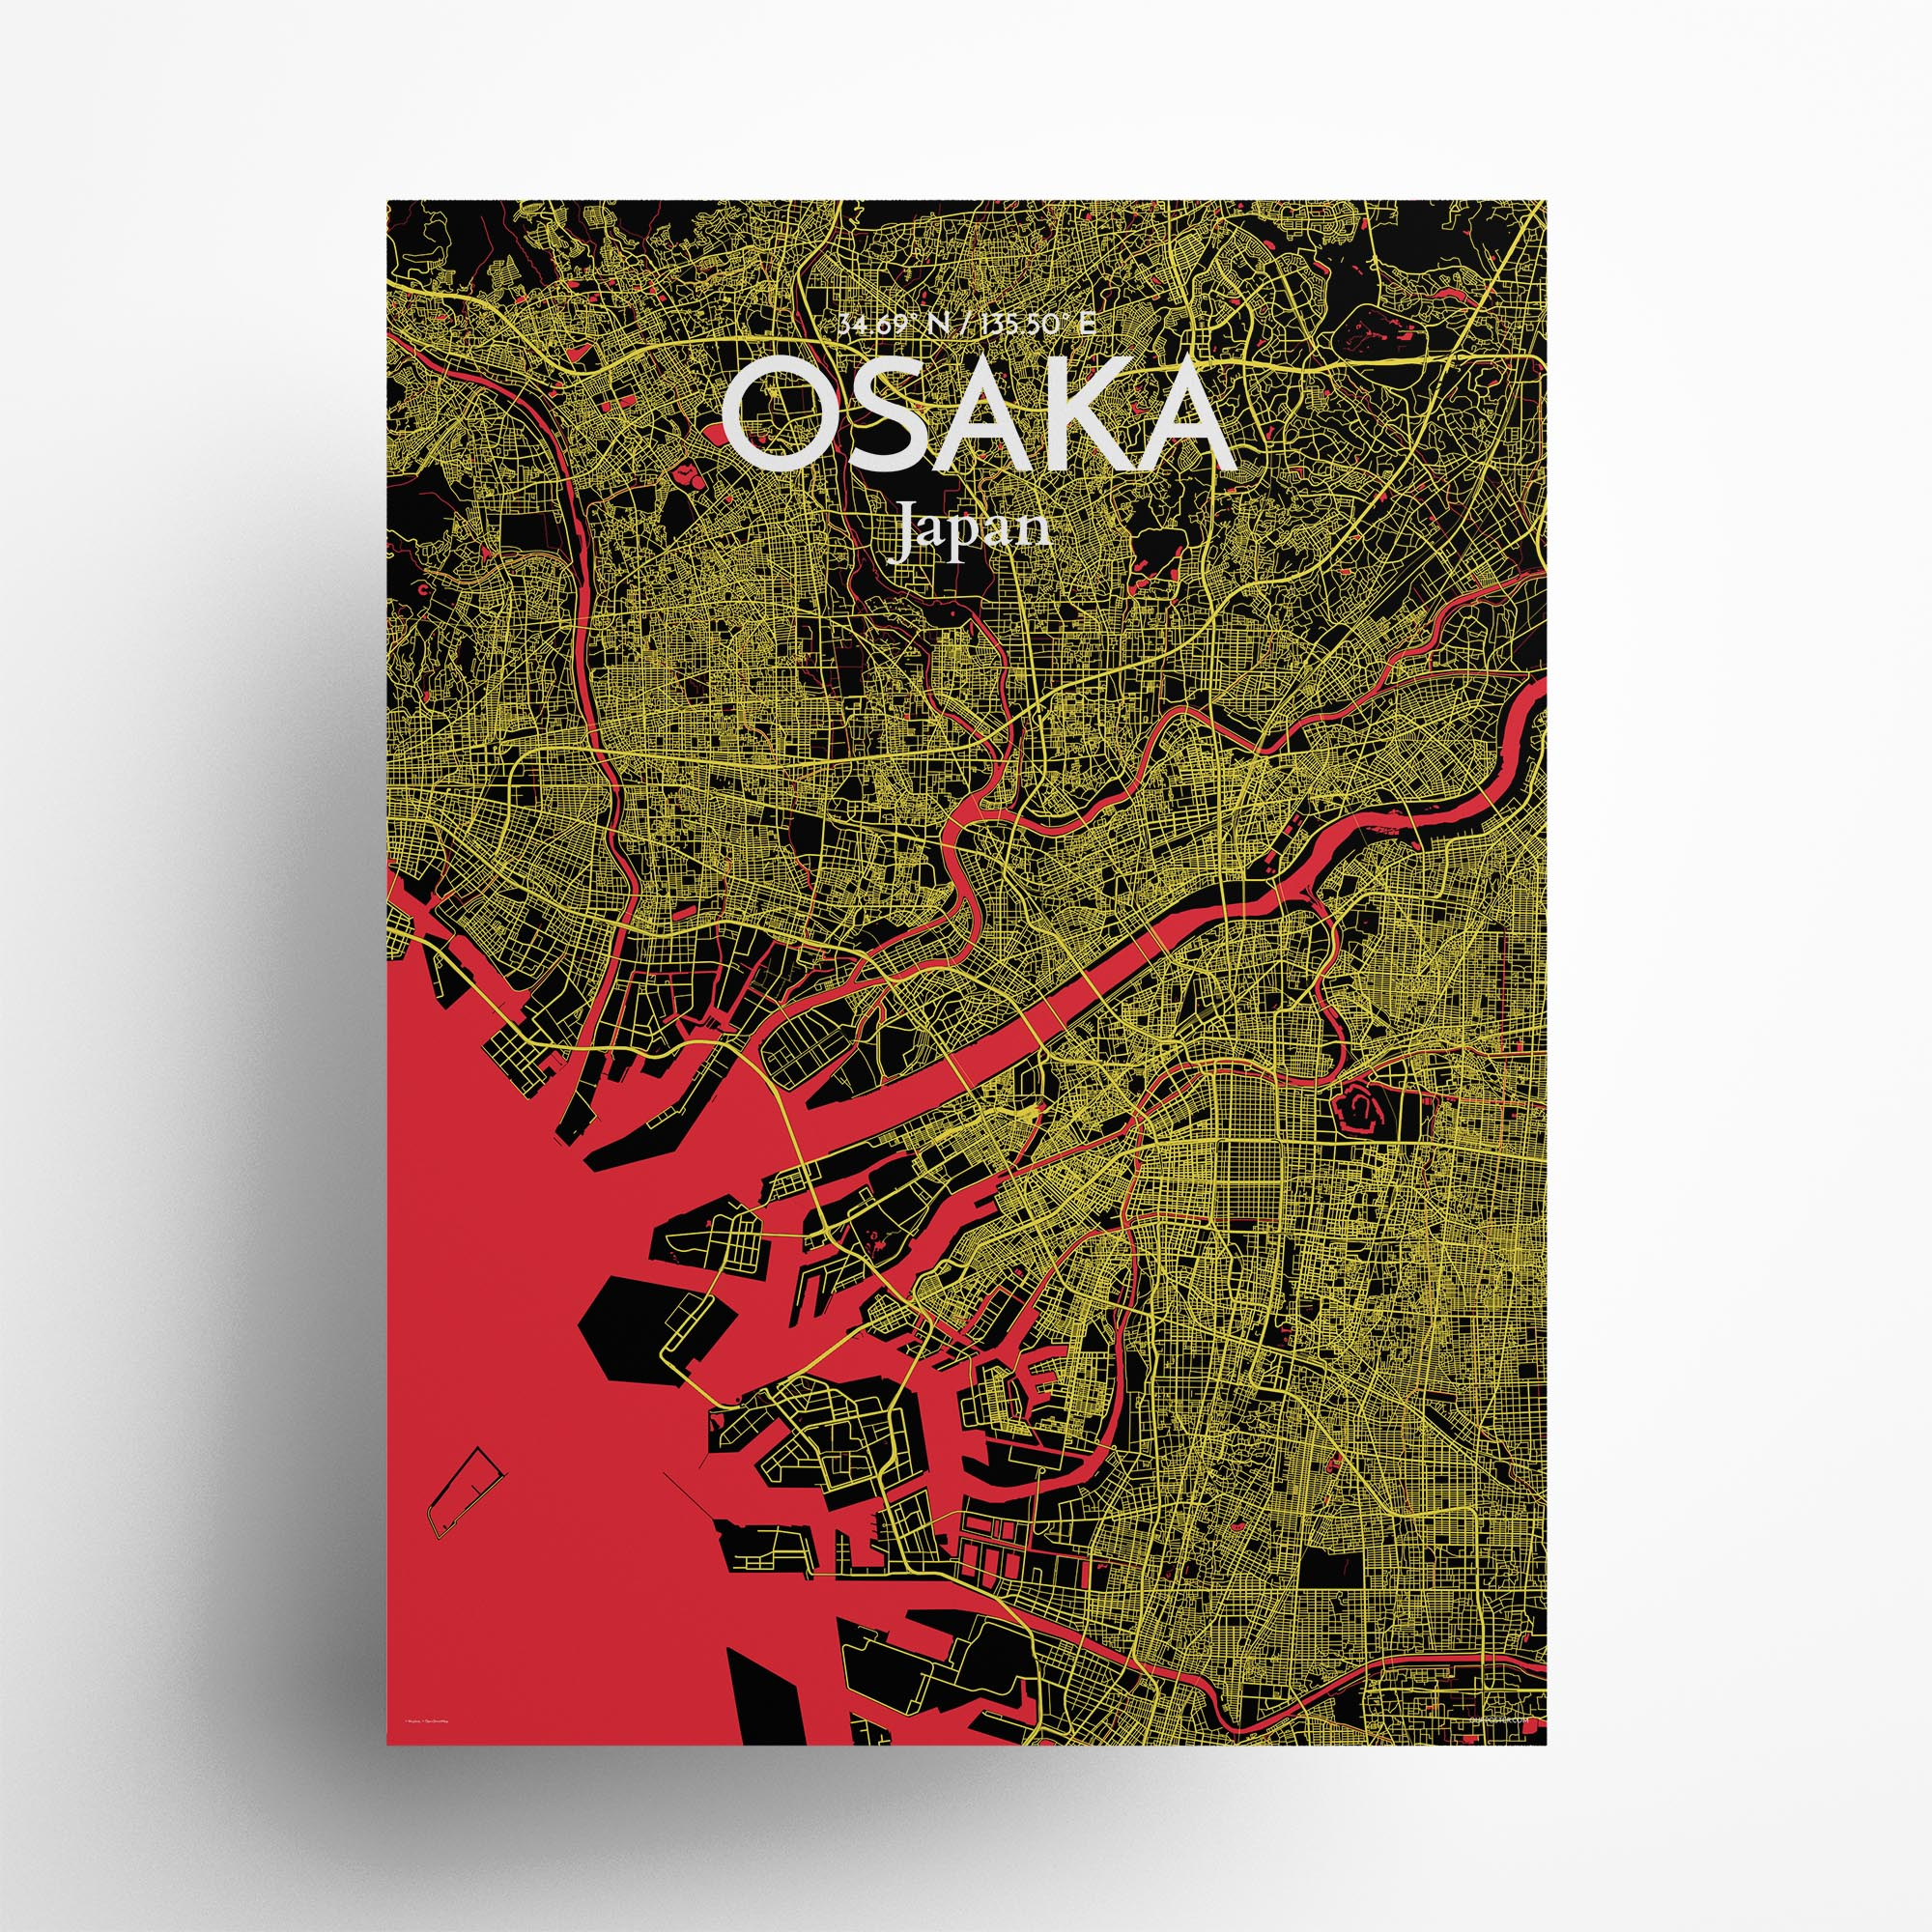 "Osaka city map poster in Contrast of size 18"" x 24"""